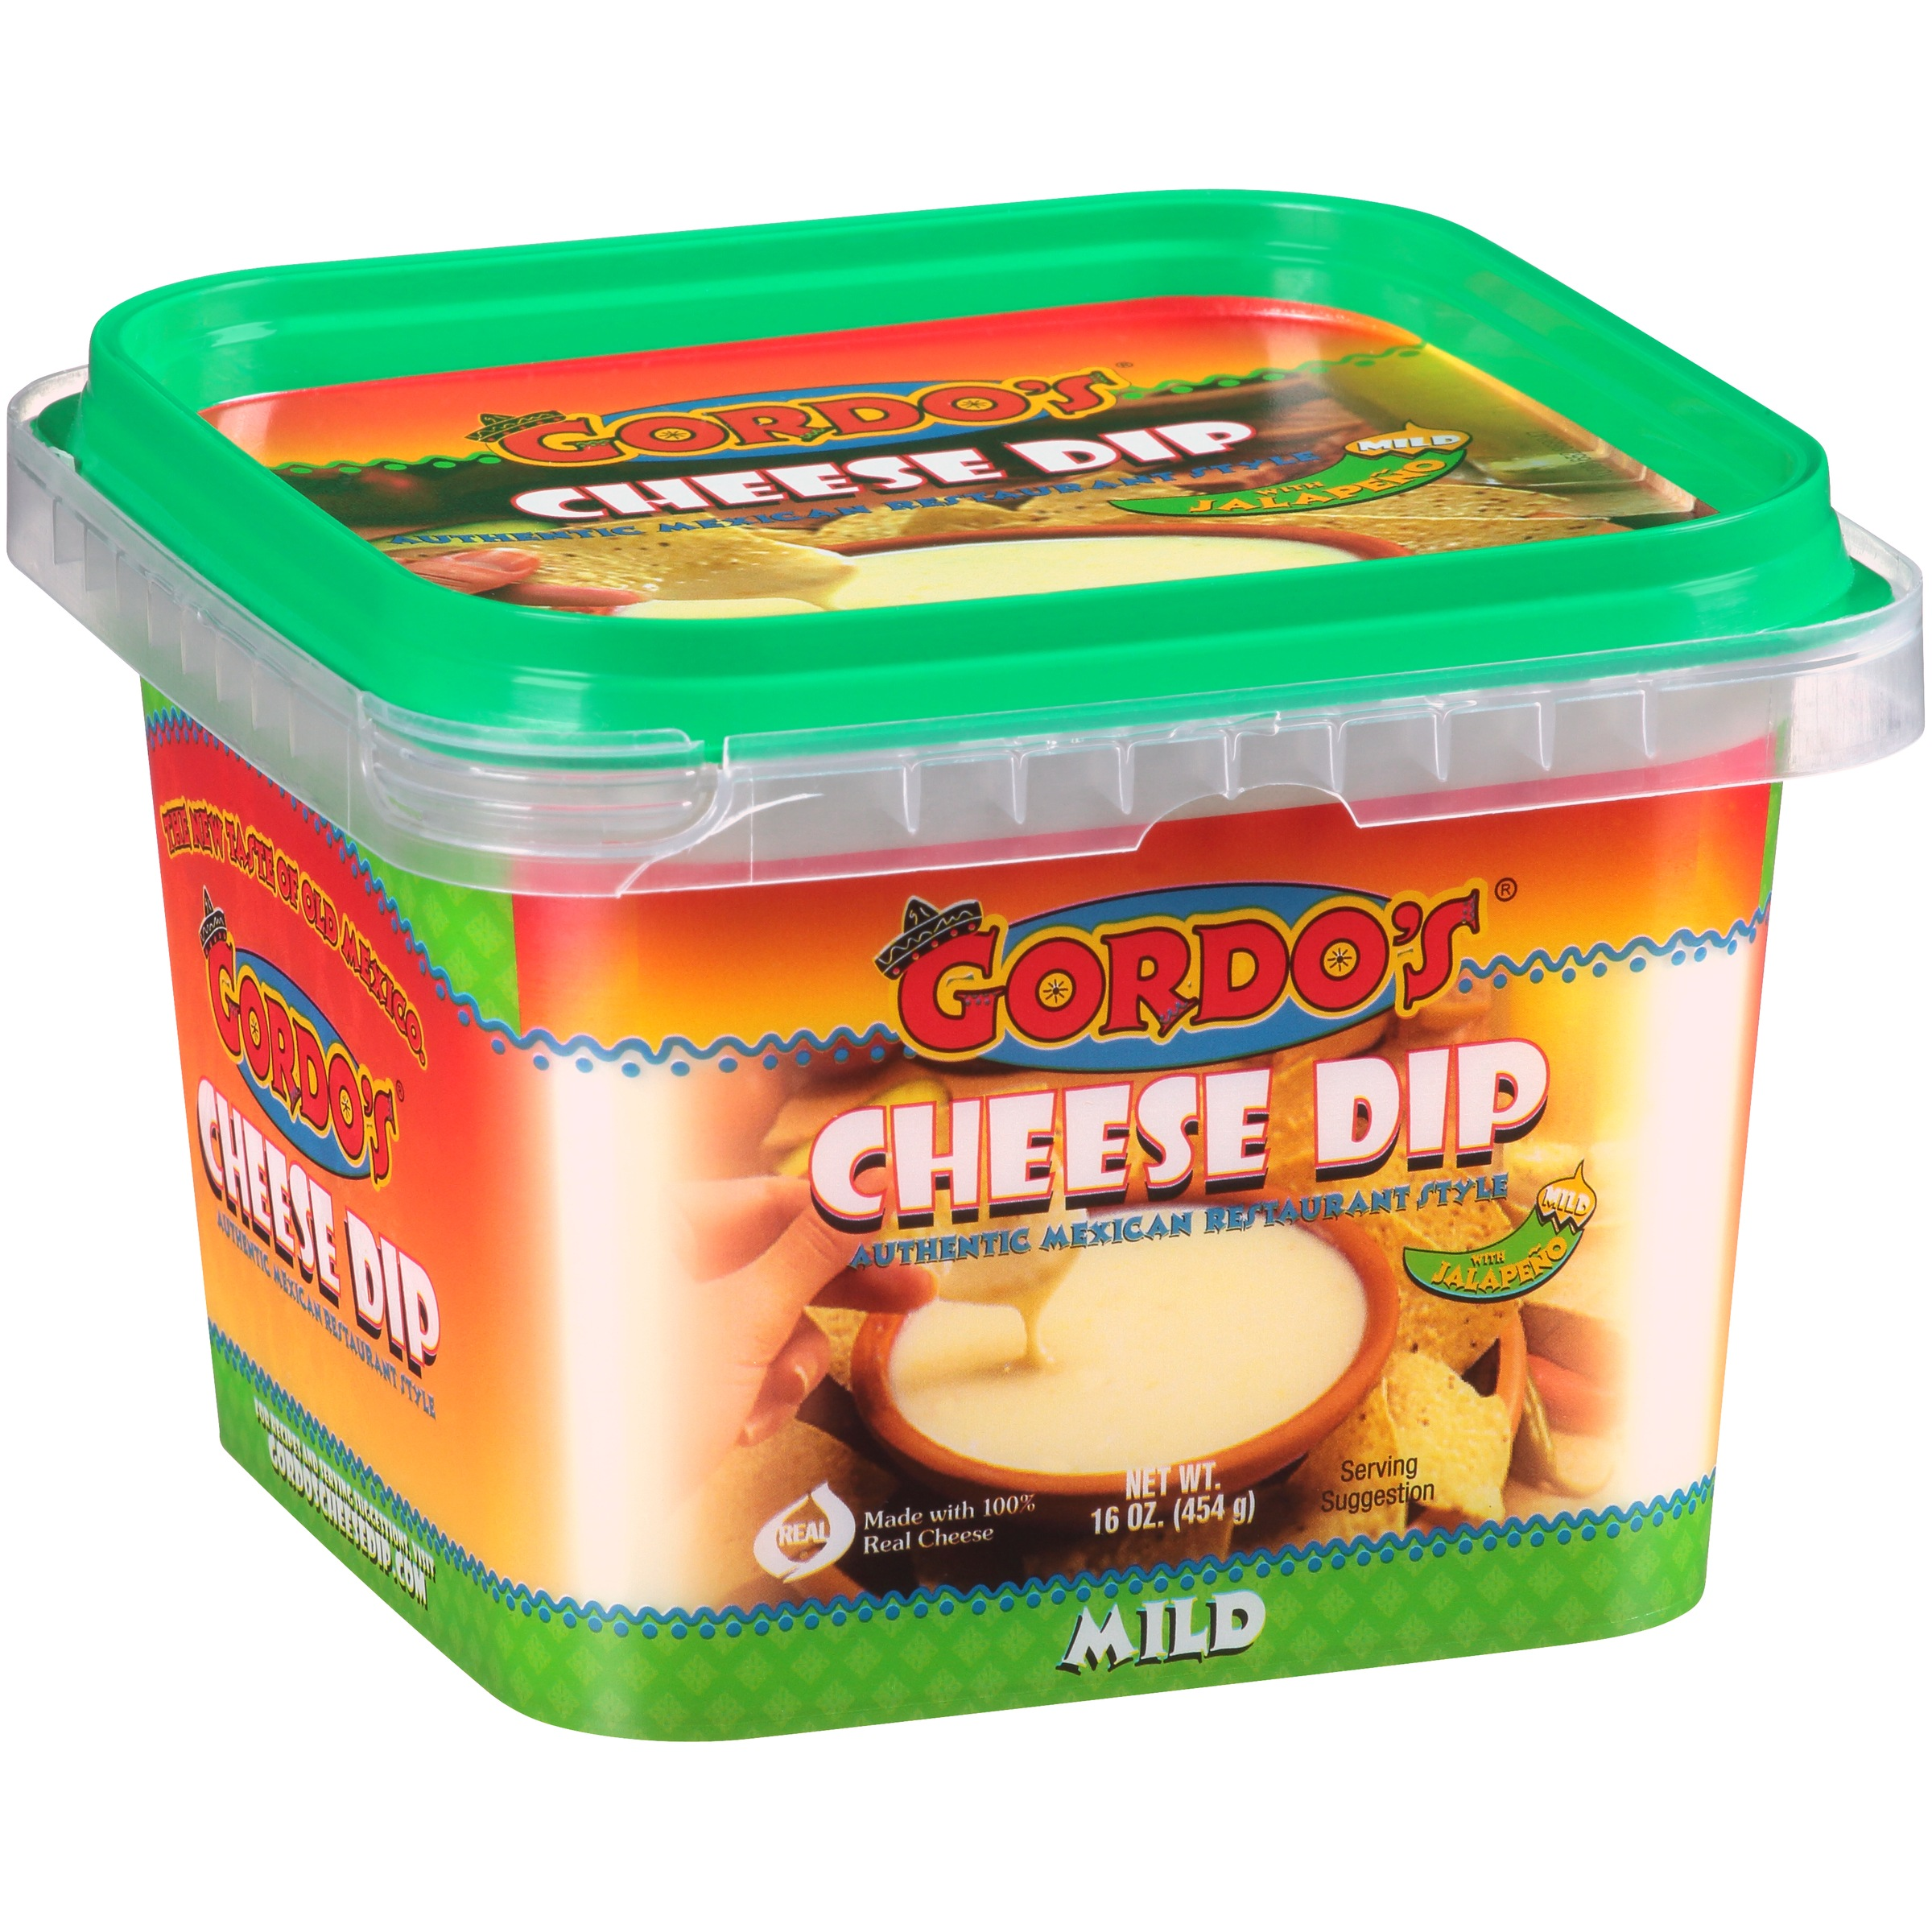 Gordo's® Mild Cheese Dip 16 oz. Tub